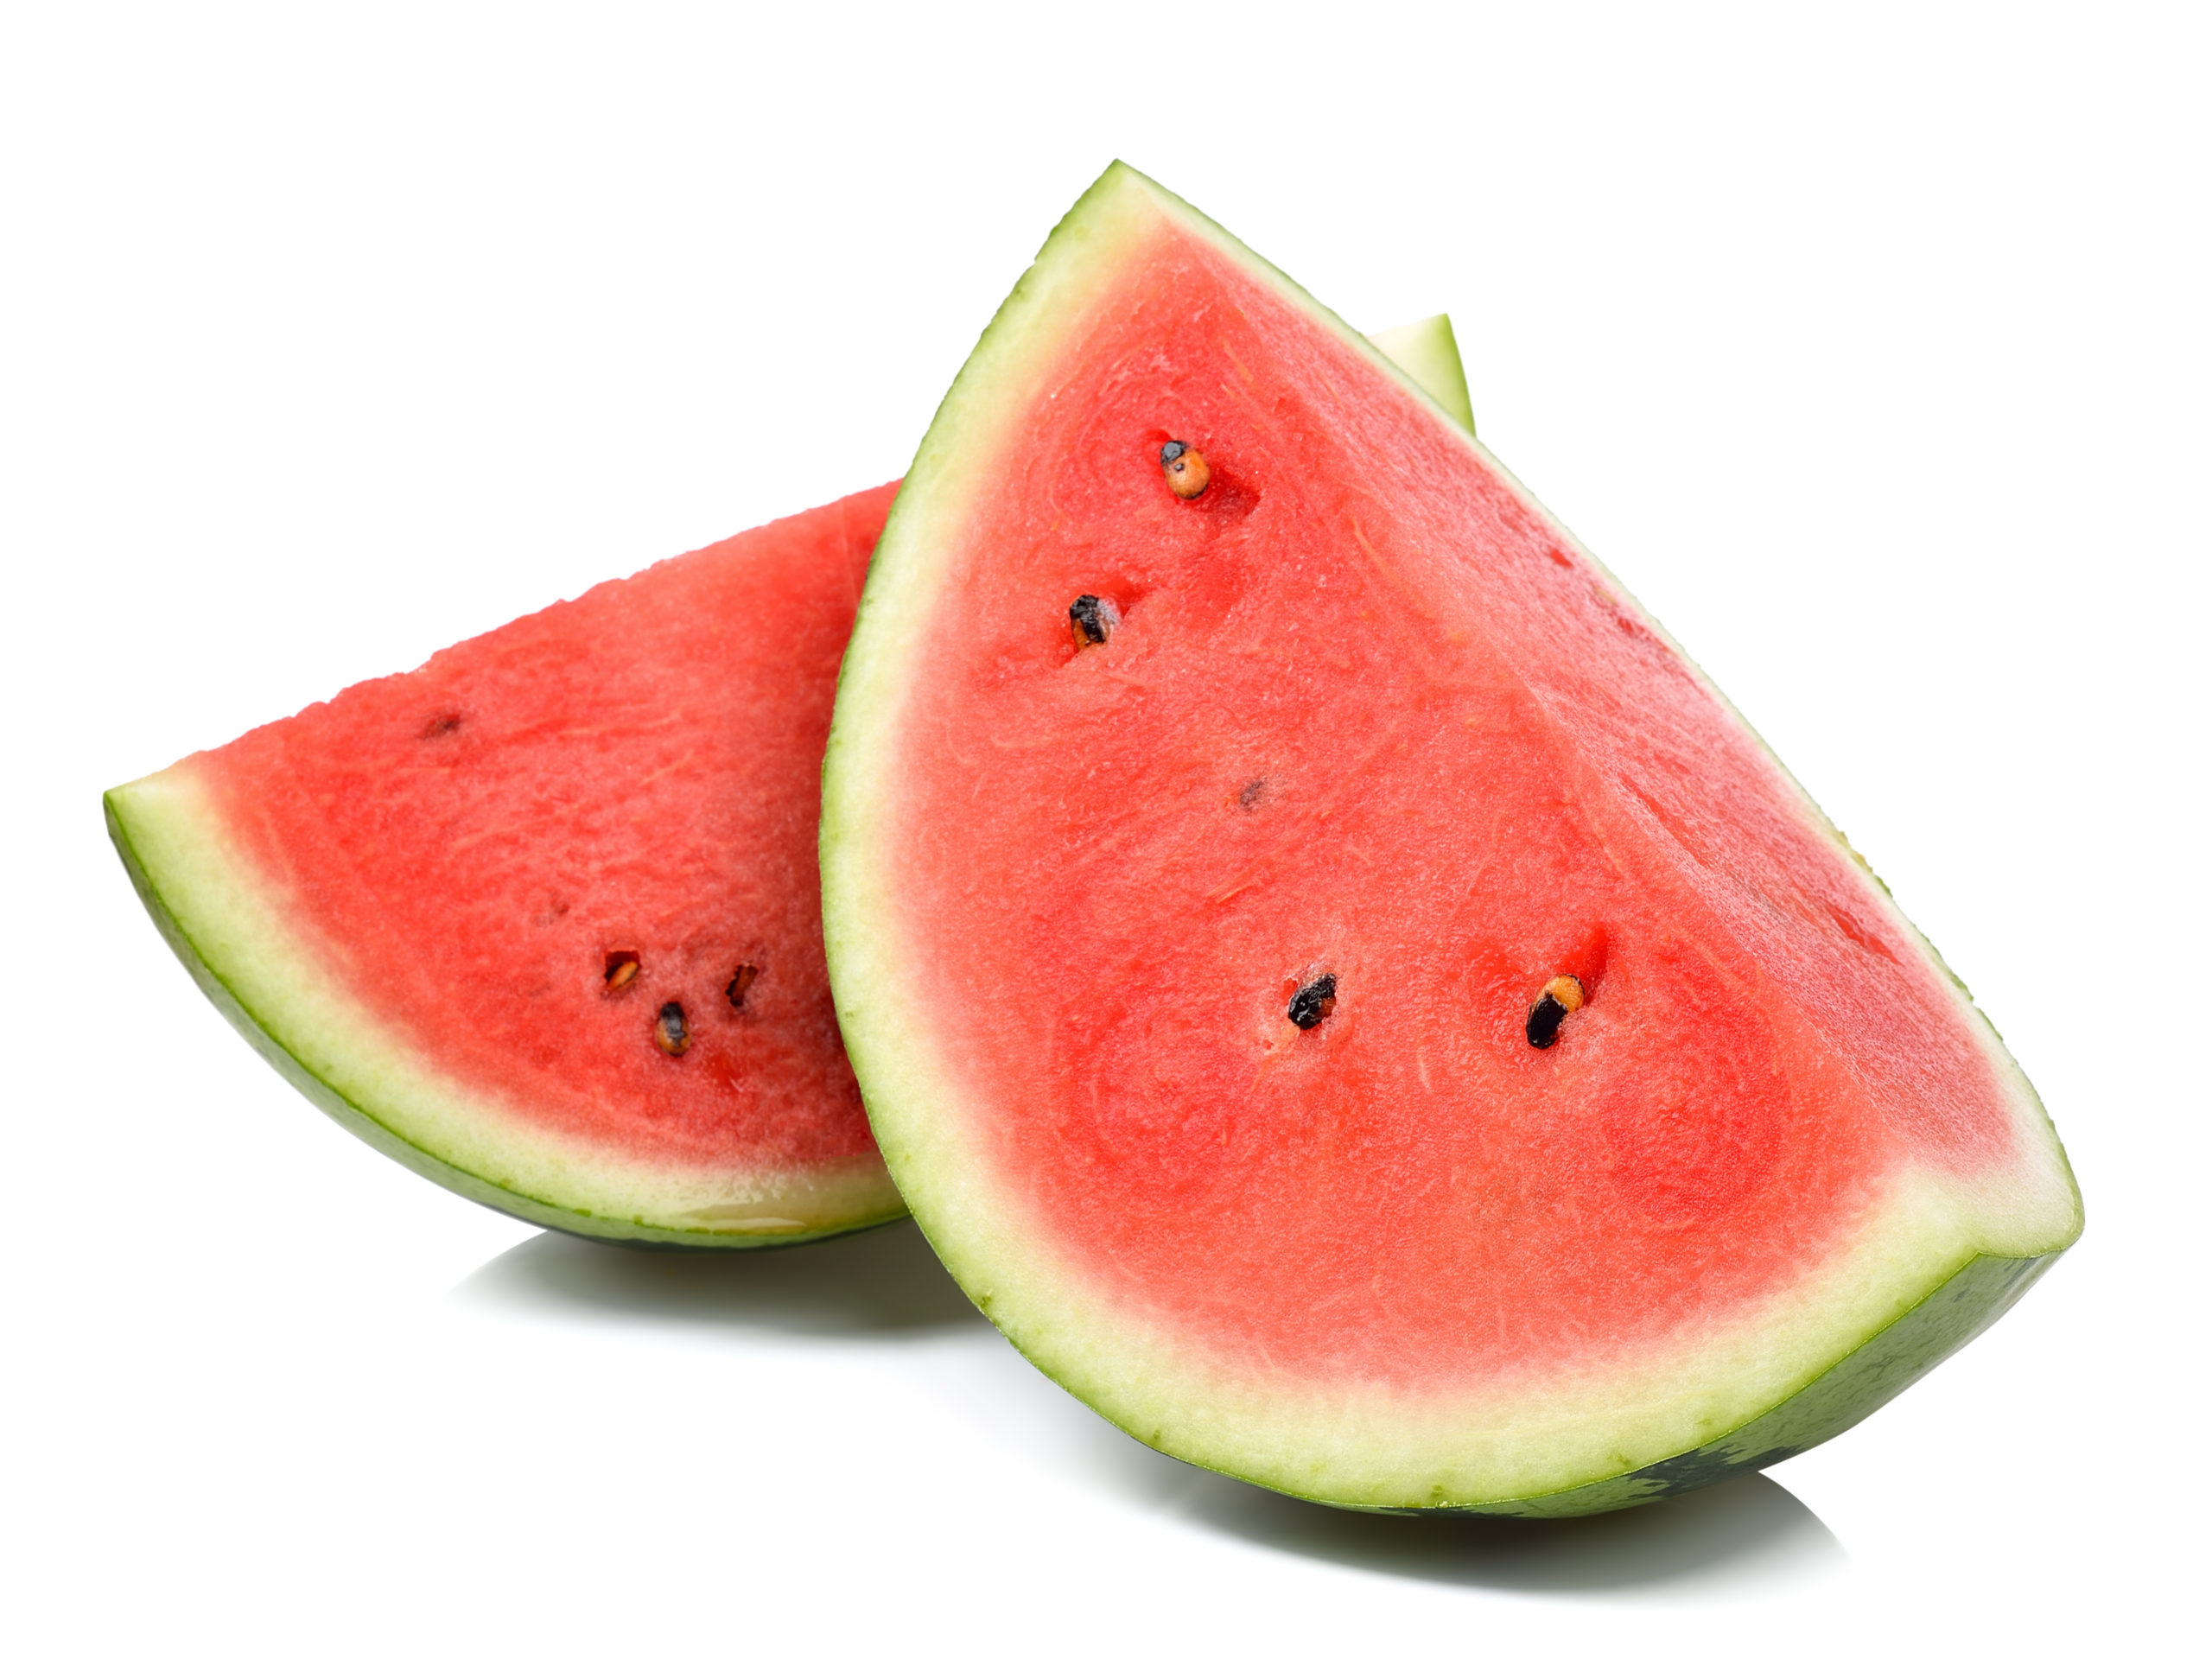 Watermelon Juice Concentrate (Clarified)